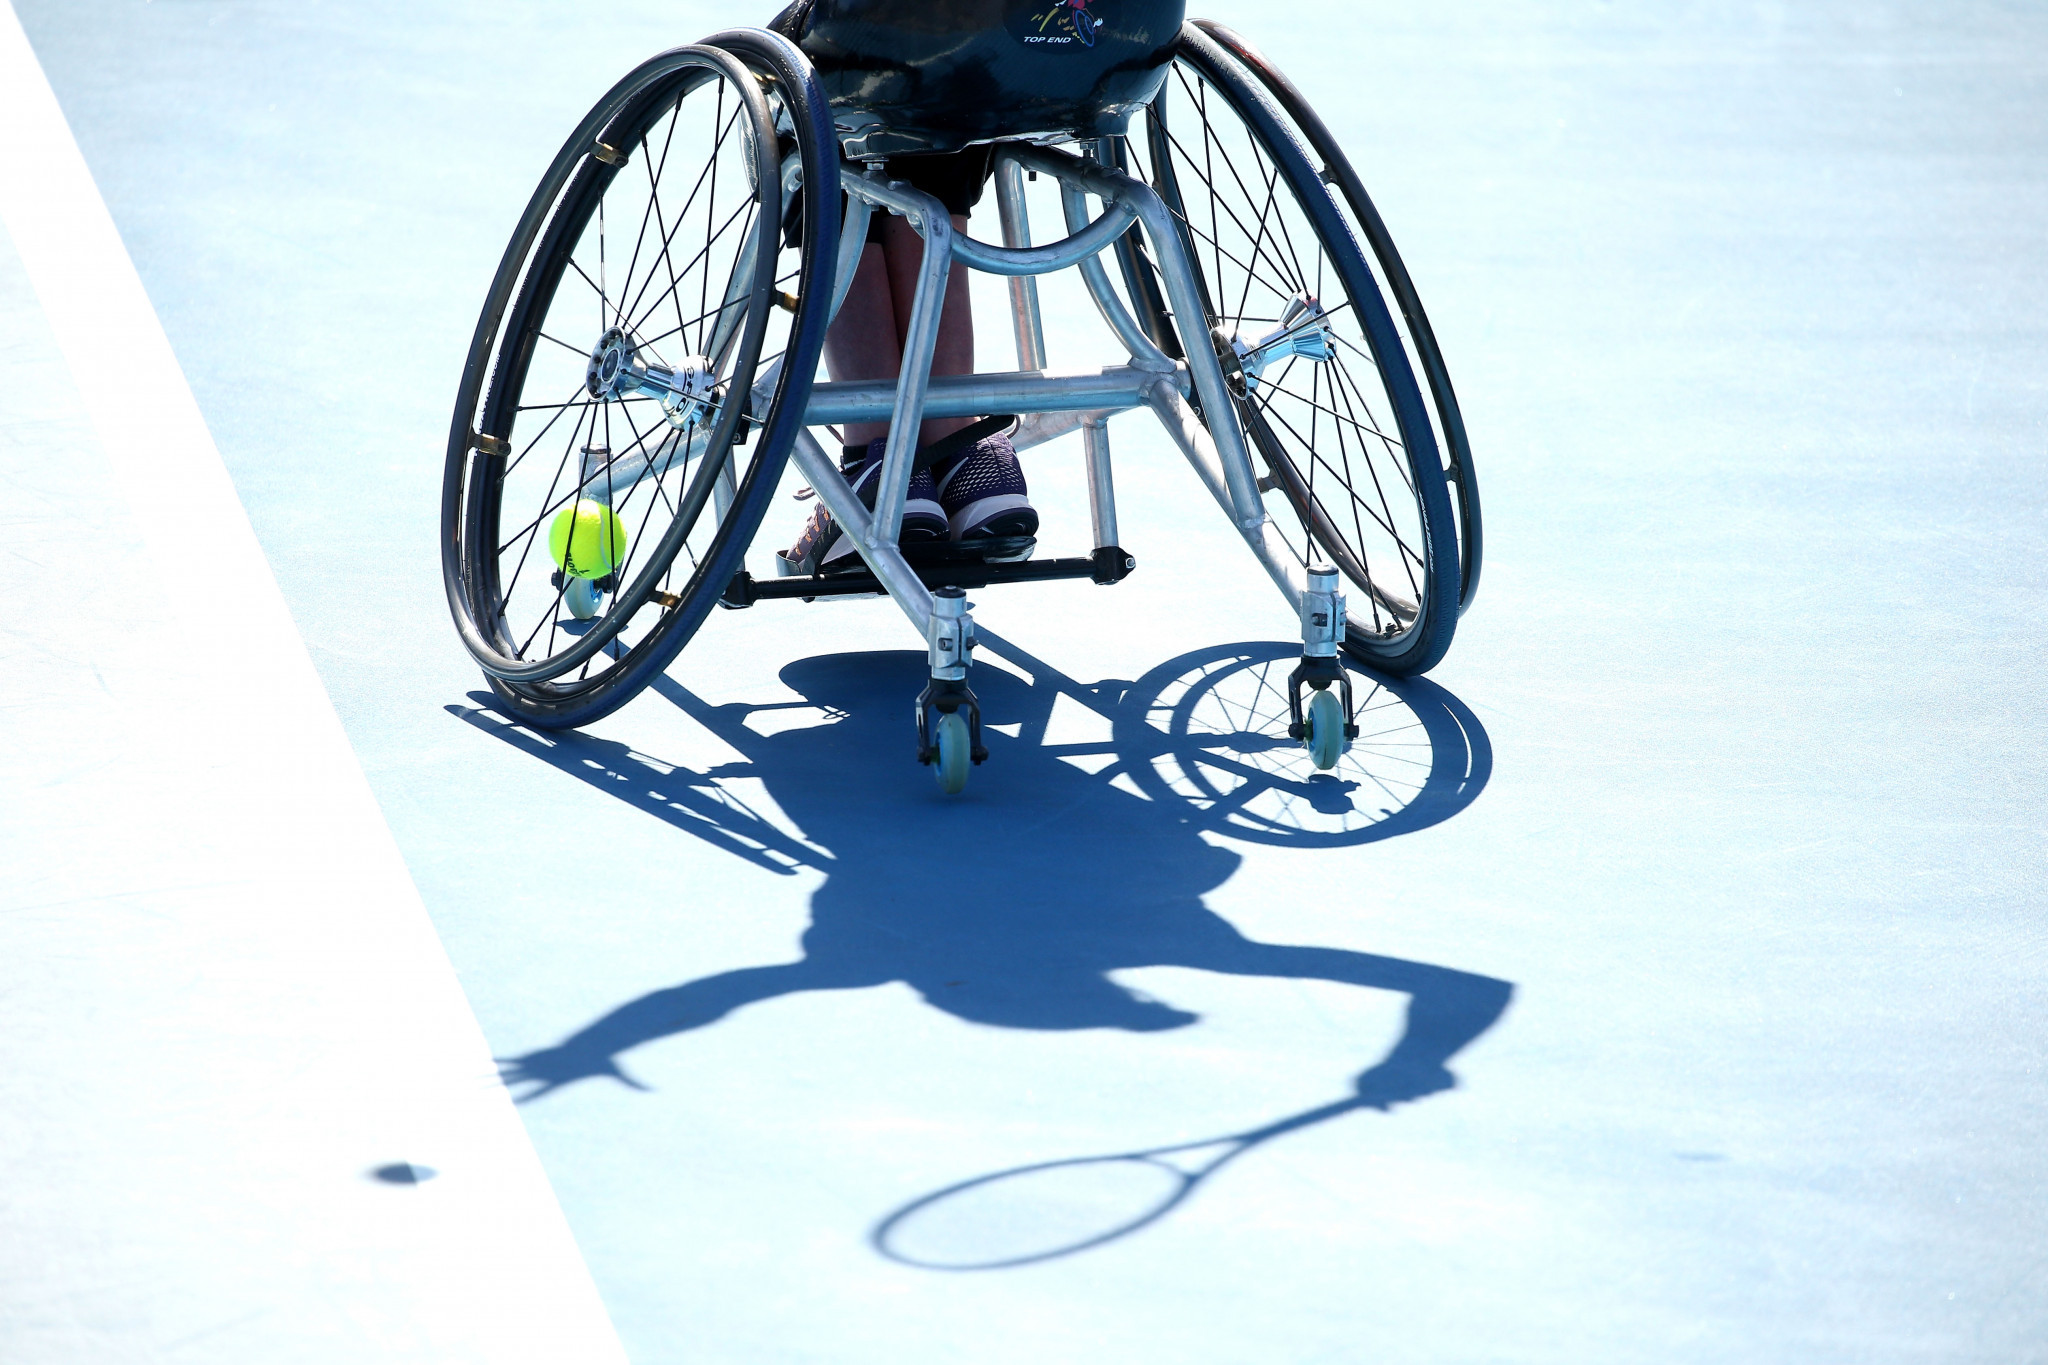 ITF announces wheelchair tour events for early 2018